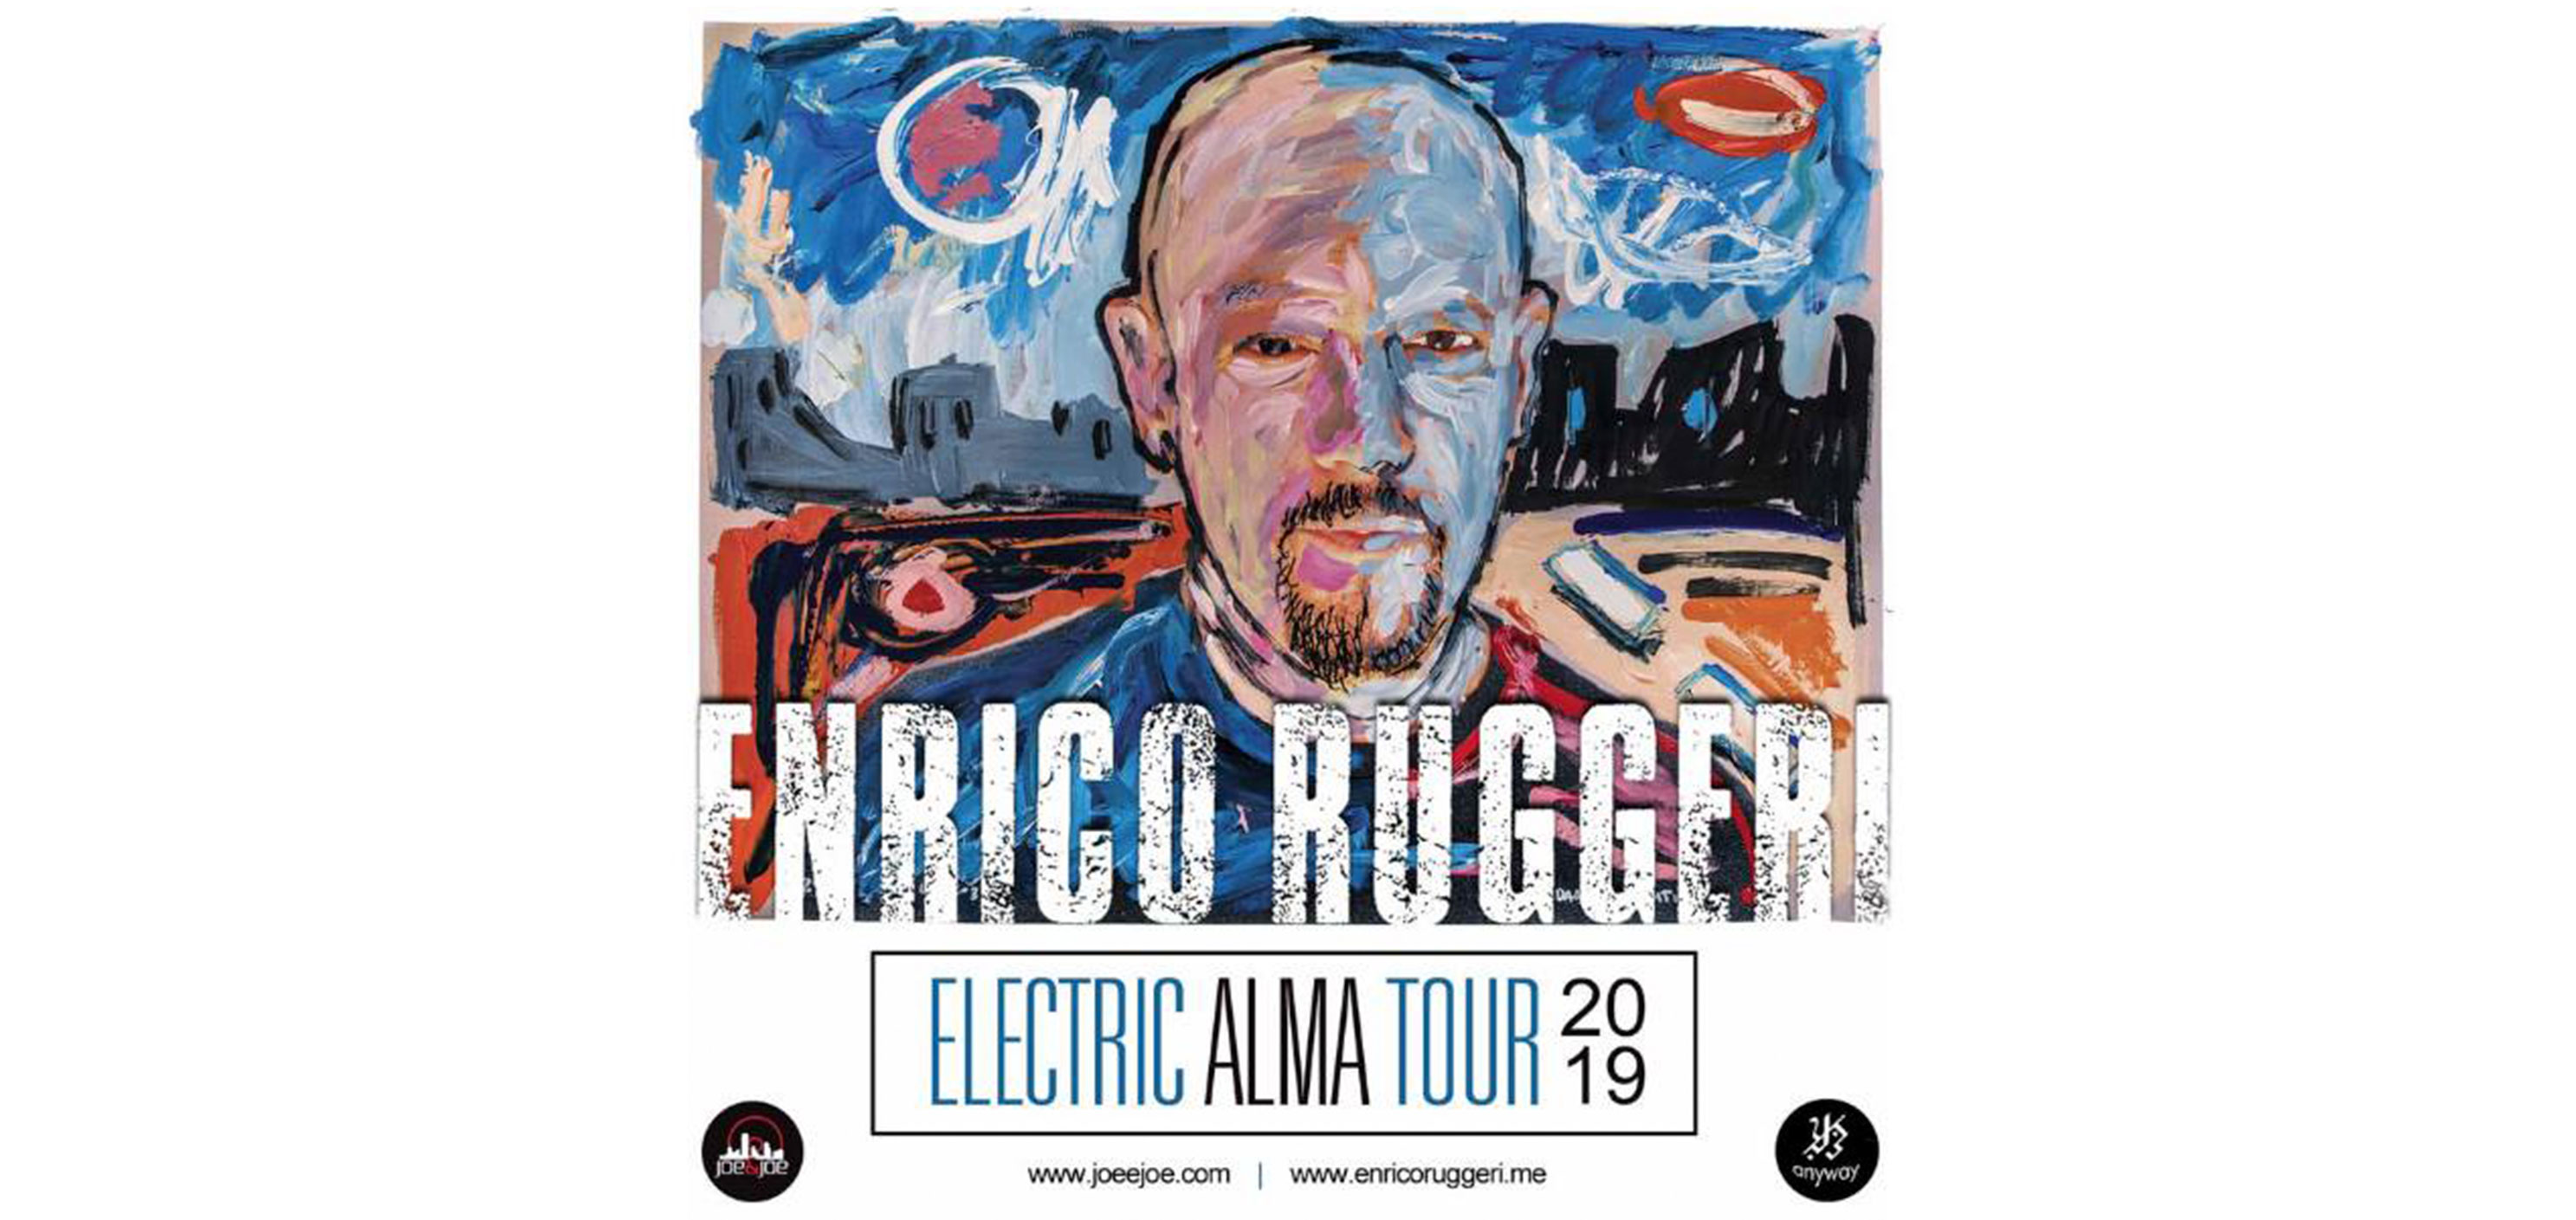 Enrico Ruggeri Electric ALMA Tour 2019 - Lecce